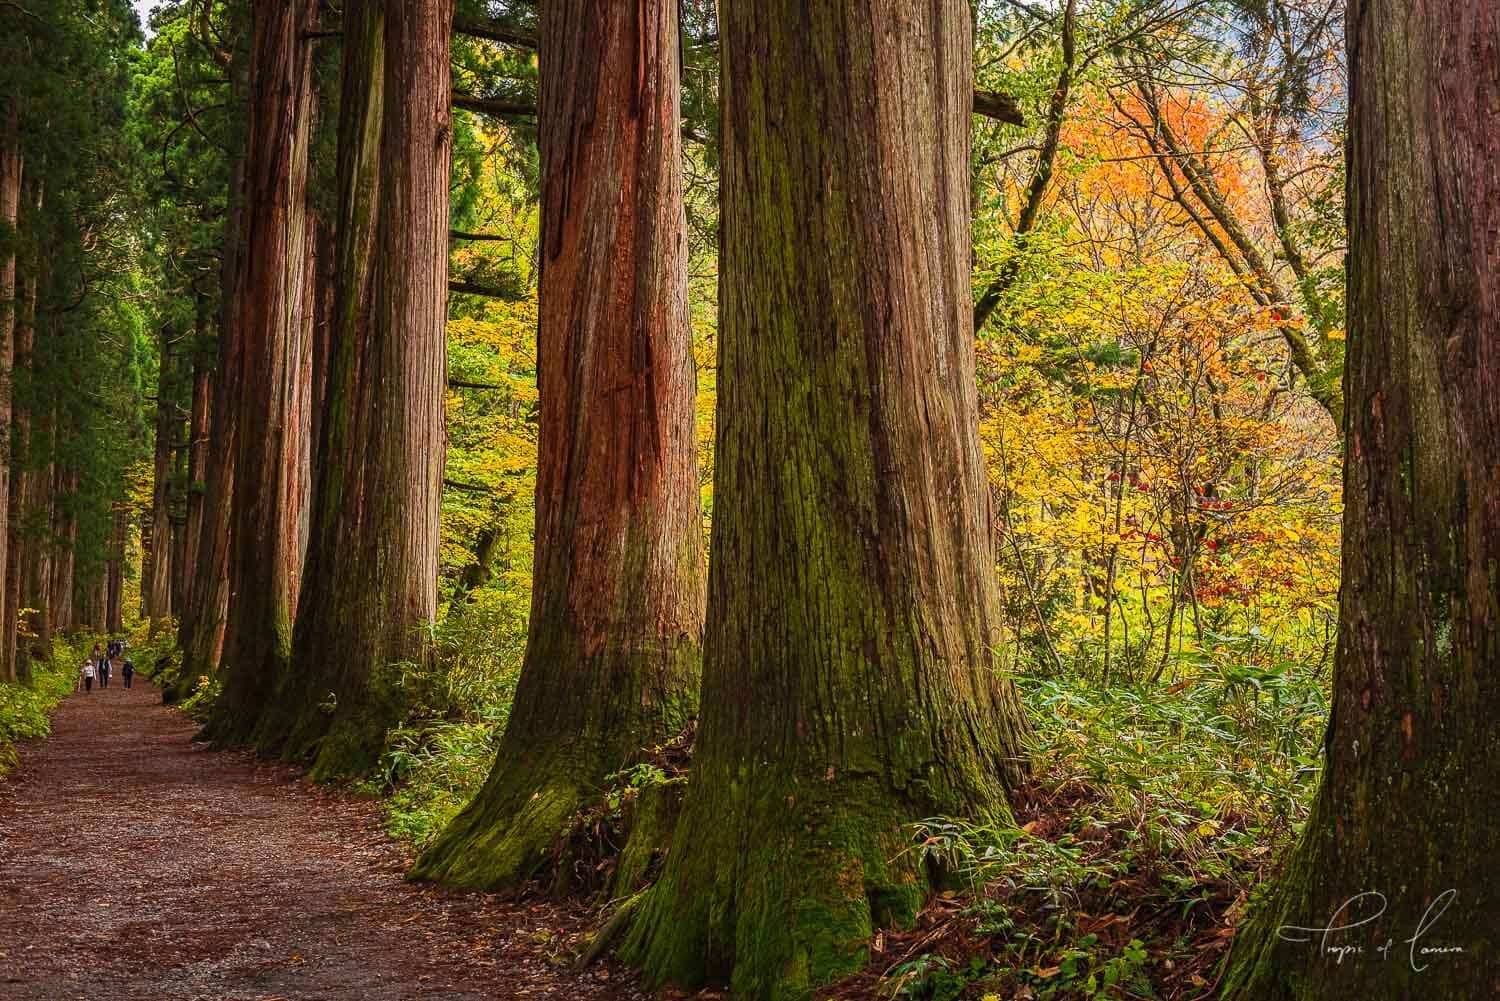 400 year old cedar trees on the path to Togakushi Upper Shrine